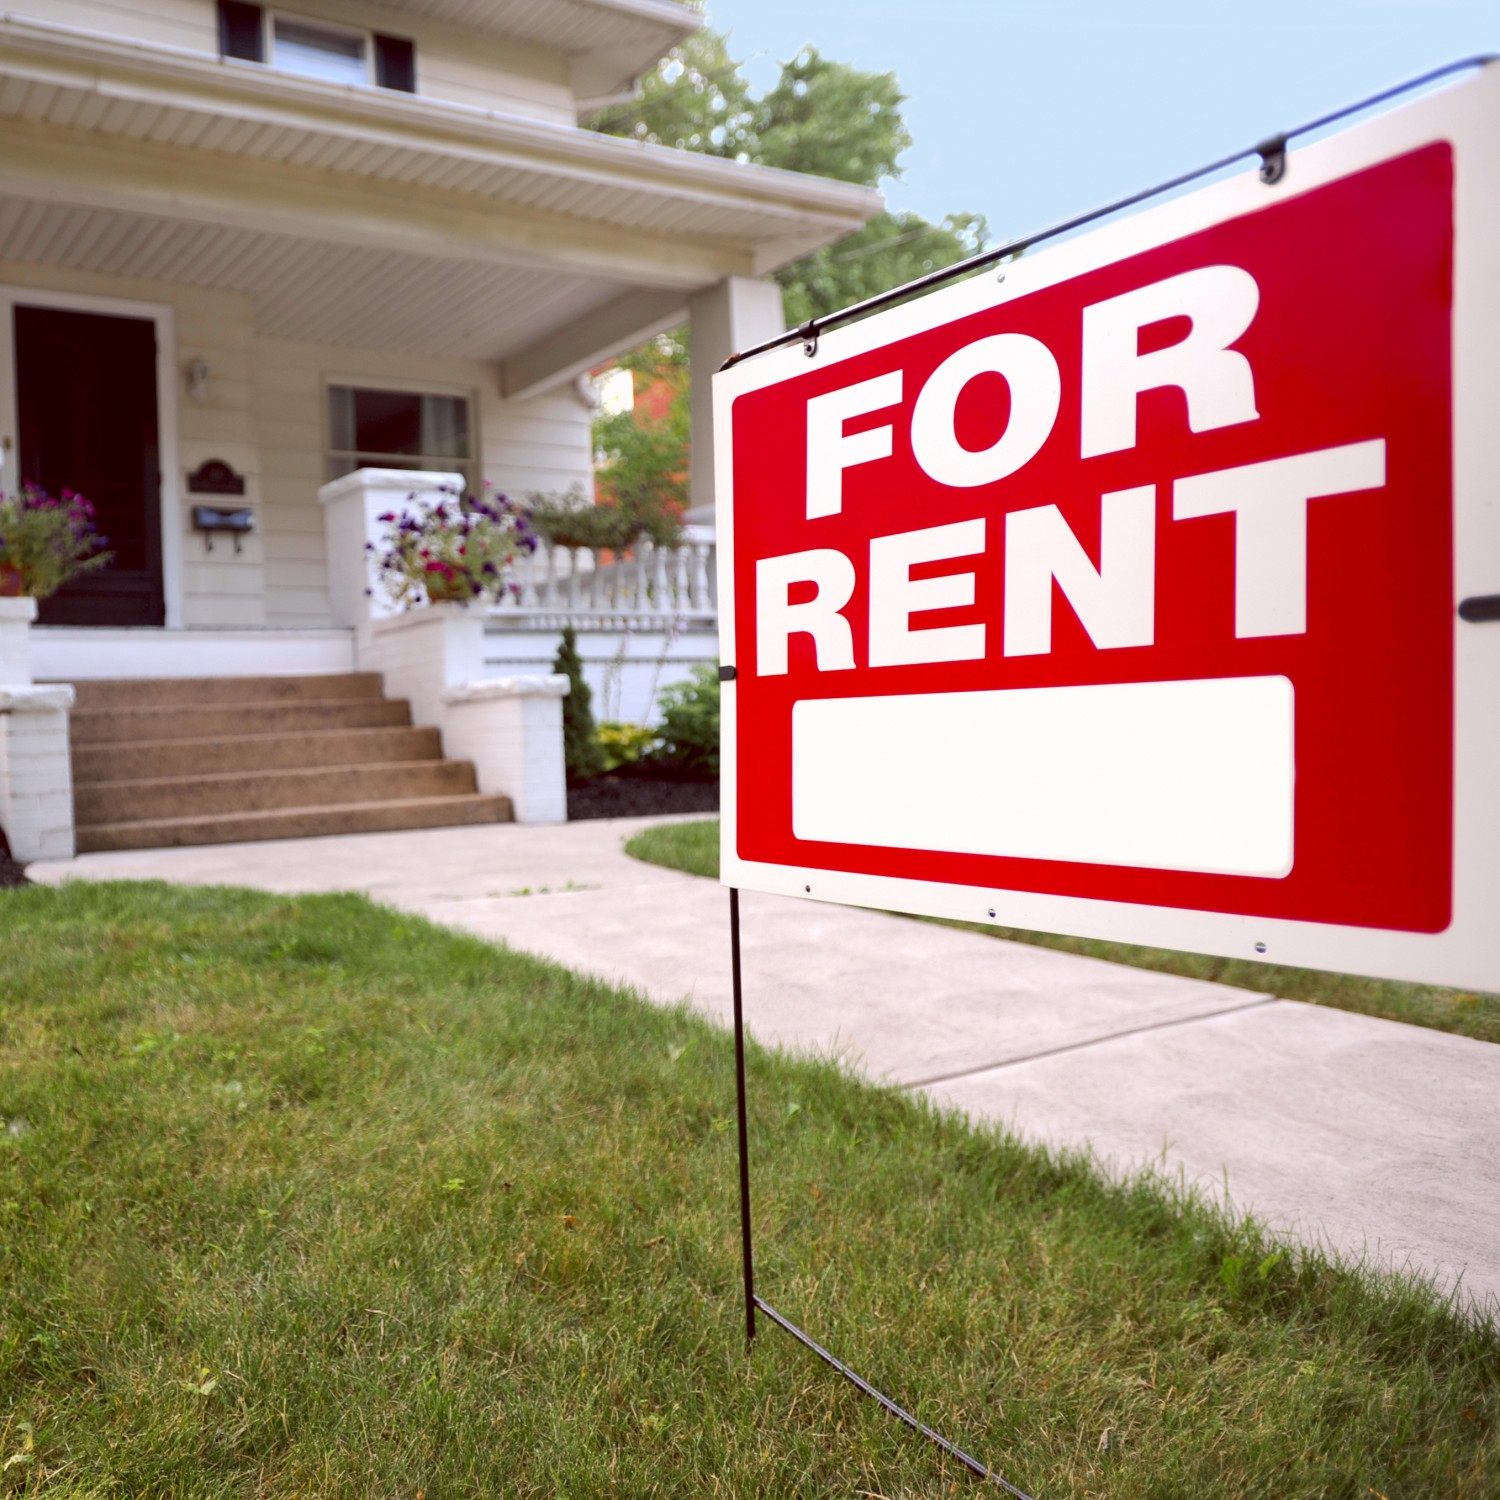 for rent by owners - Parfu kaptanband co